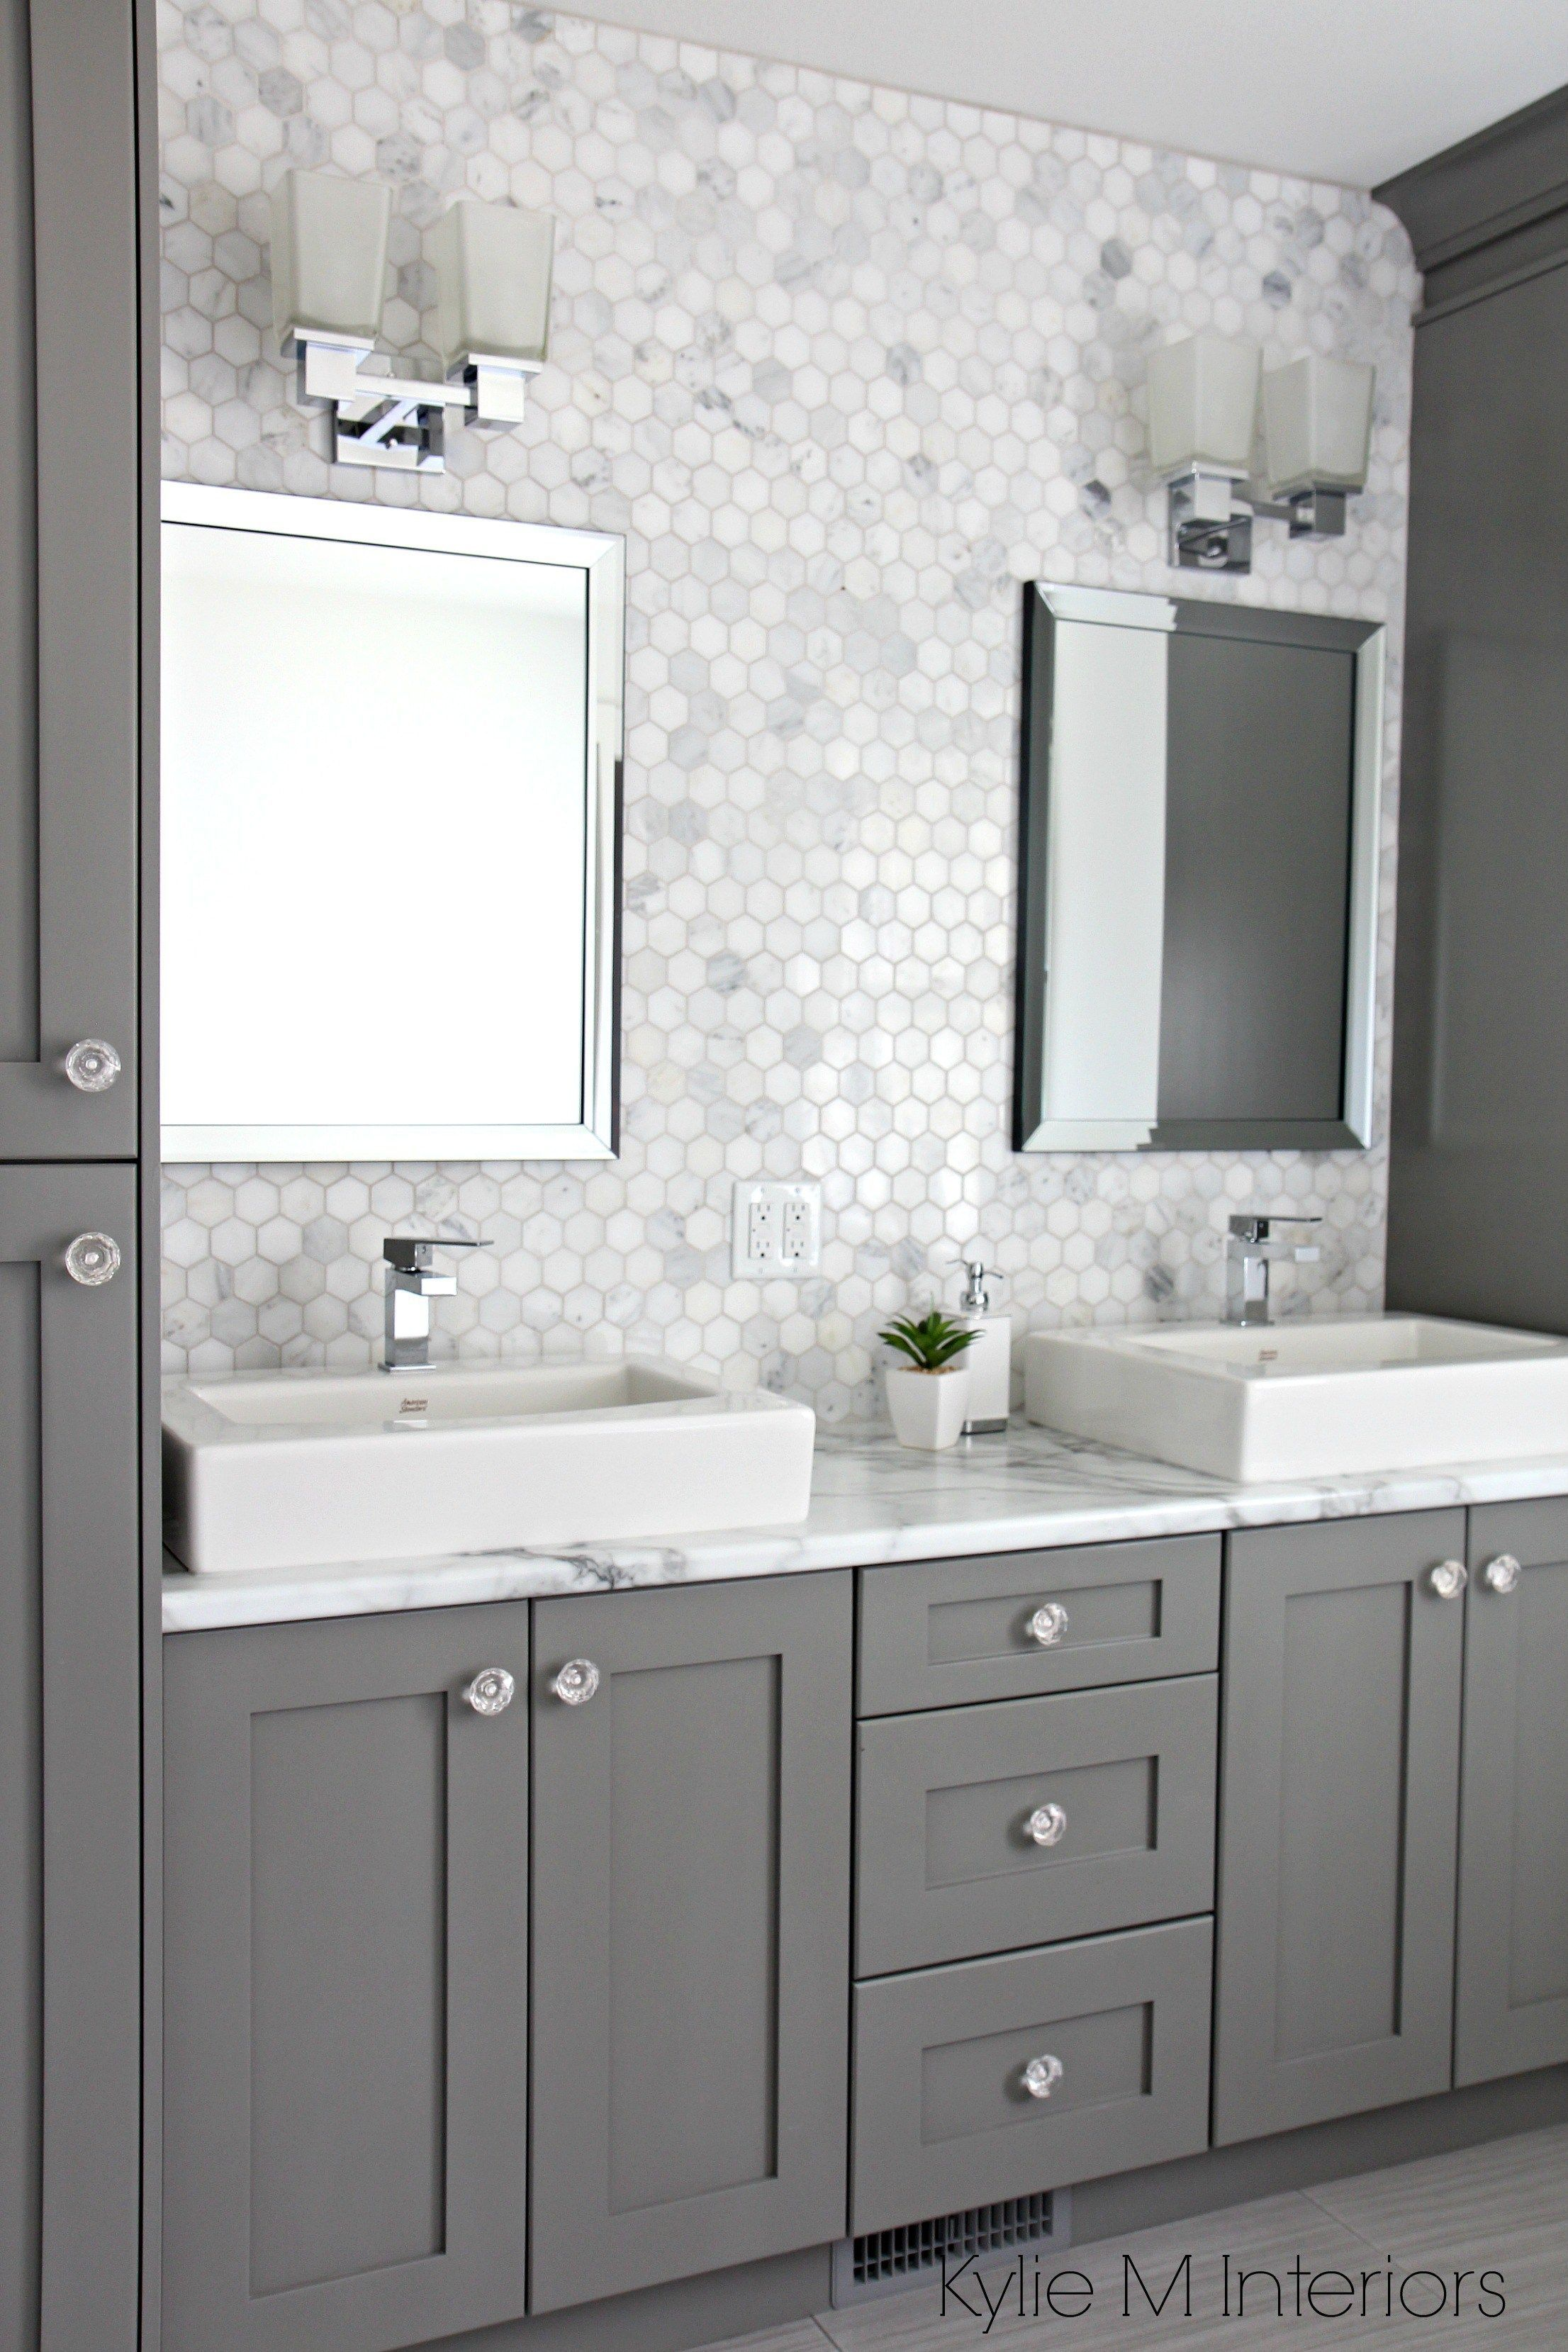 Entire Wall Tiles Behind Sinks Marble Backsplash In Hexagon Shape With Vanity Cabinets Painted Chelsea Gray Double Sinks And Chrome Accents By Kylie M Interio Rekonstrukciya Vannoj Kosmeticheskij Remont Vannoj Komnaty